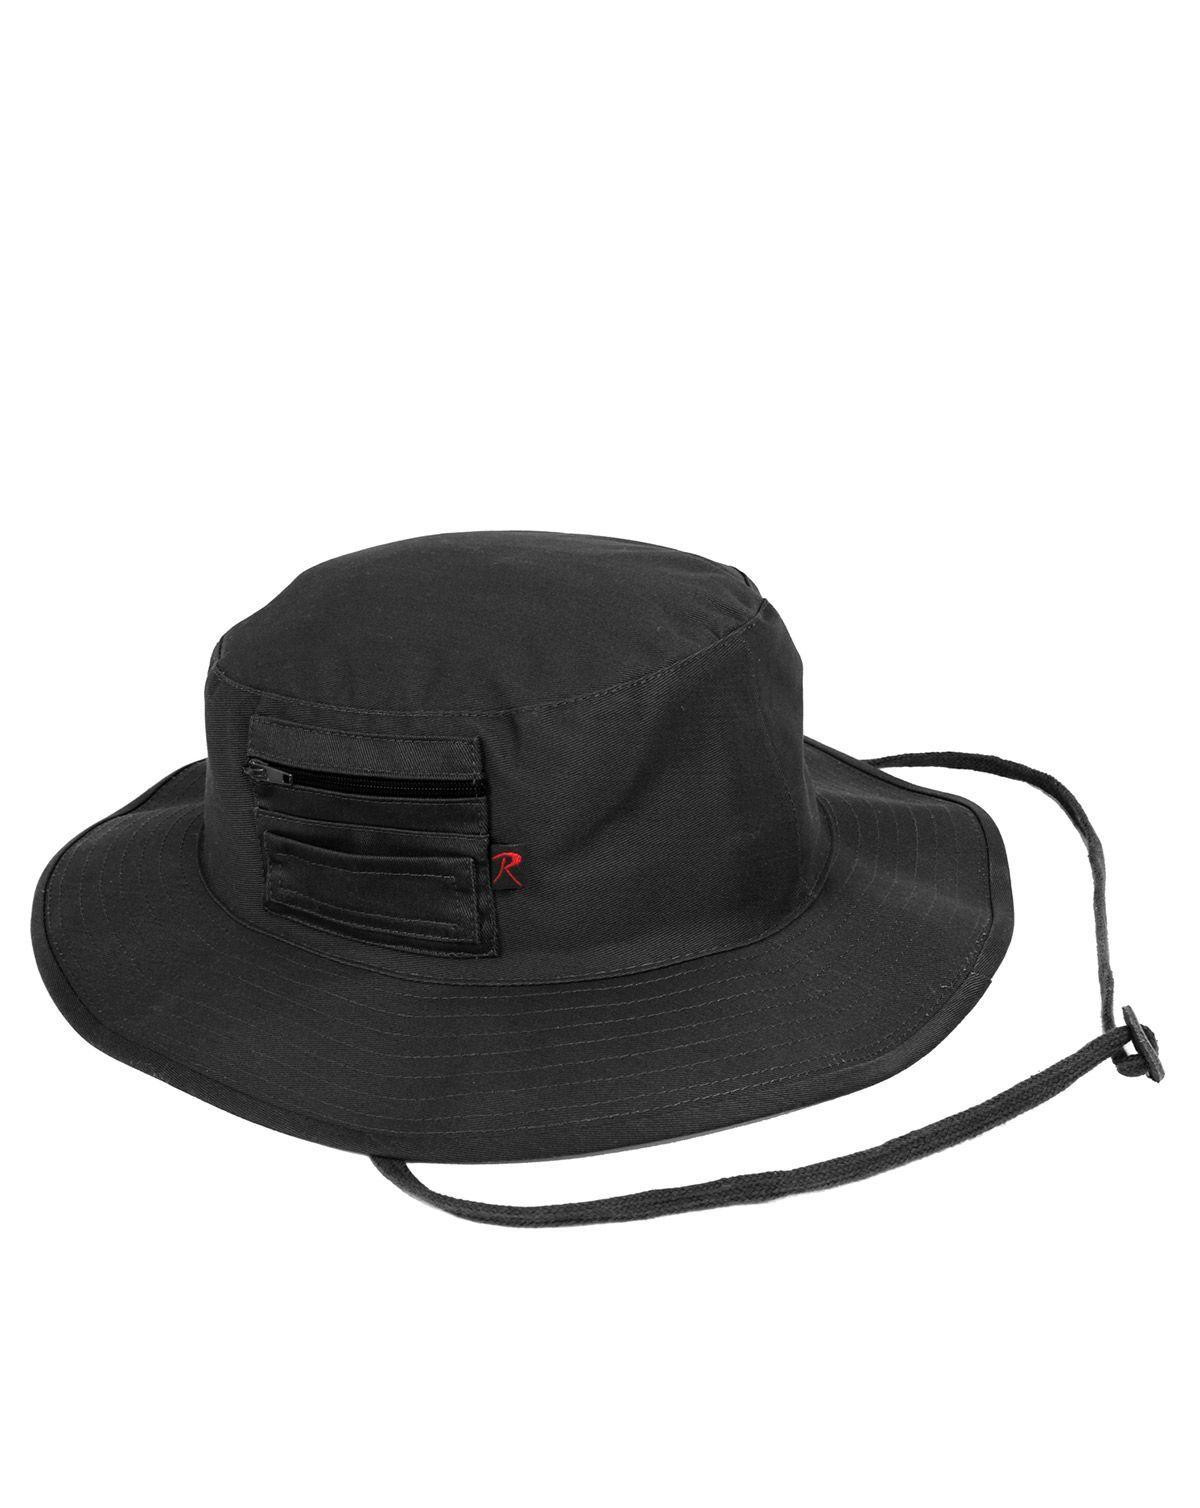 Image of   Rothco MA-1 Boonie Hat (Sort, US 7.0 / EU 56 cm)